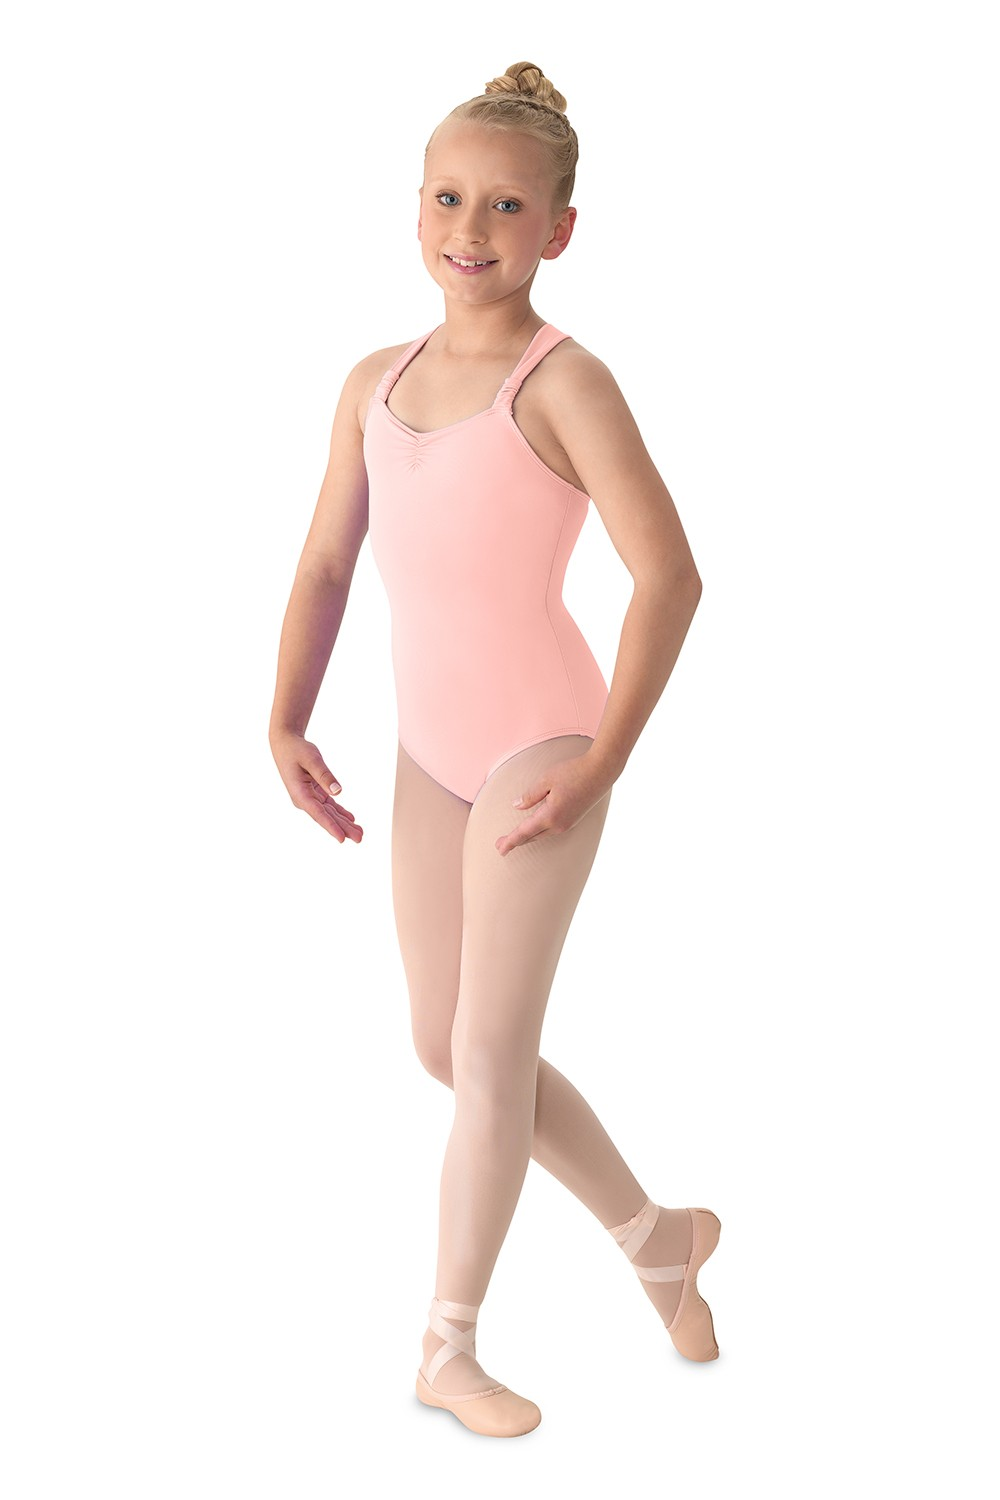 Justaucorps Bretelles Froncées Children's Dance Leotards